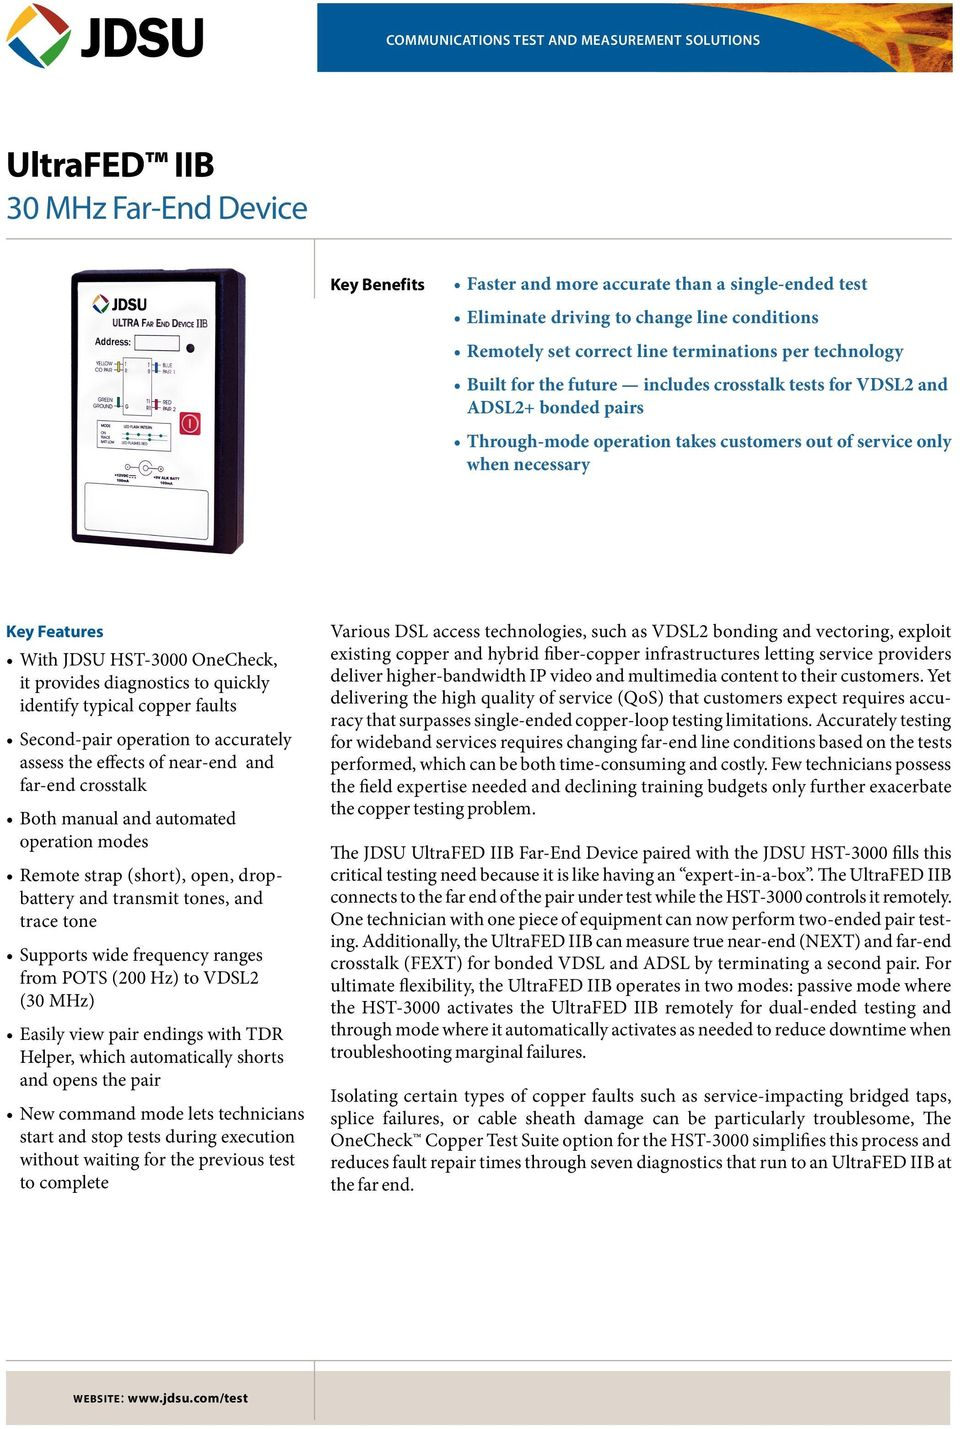 Key Features With JDSU HST-3000 OneCheck, it provides diagnostics to quickly identify typical copper faults Second-pair operation to accurately assess the effects of near-end and far-end crosstalk